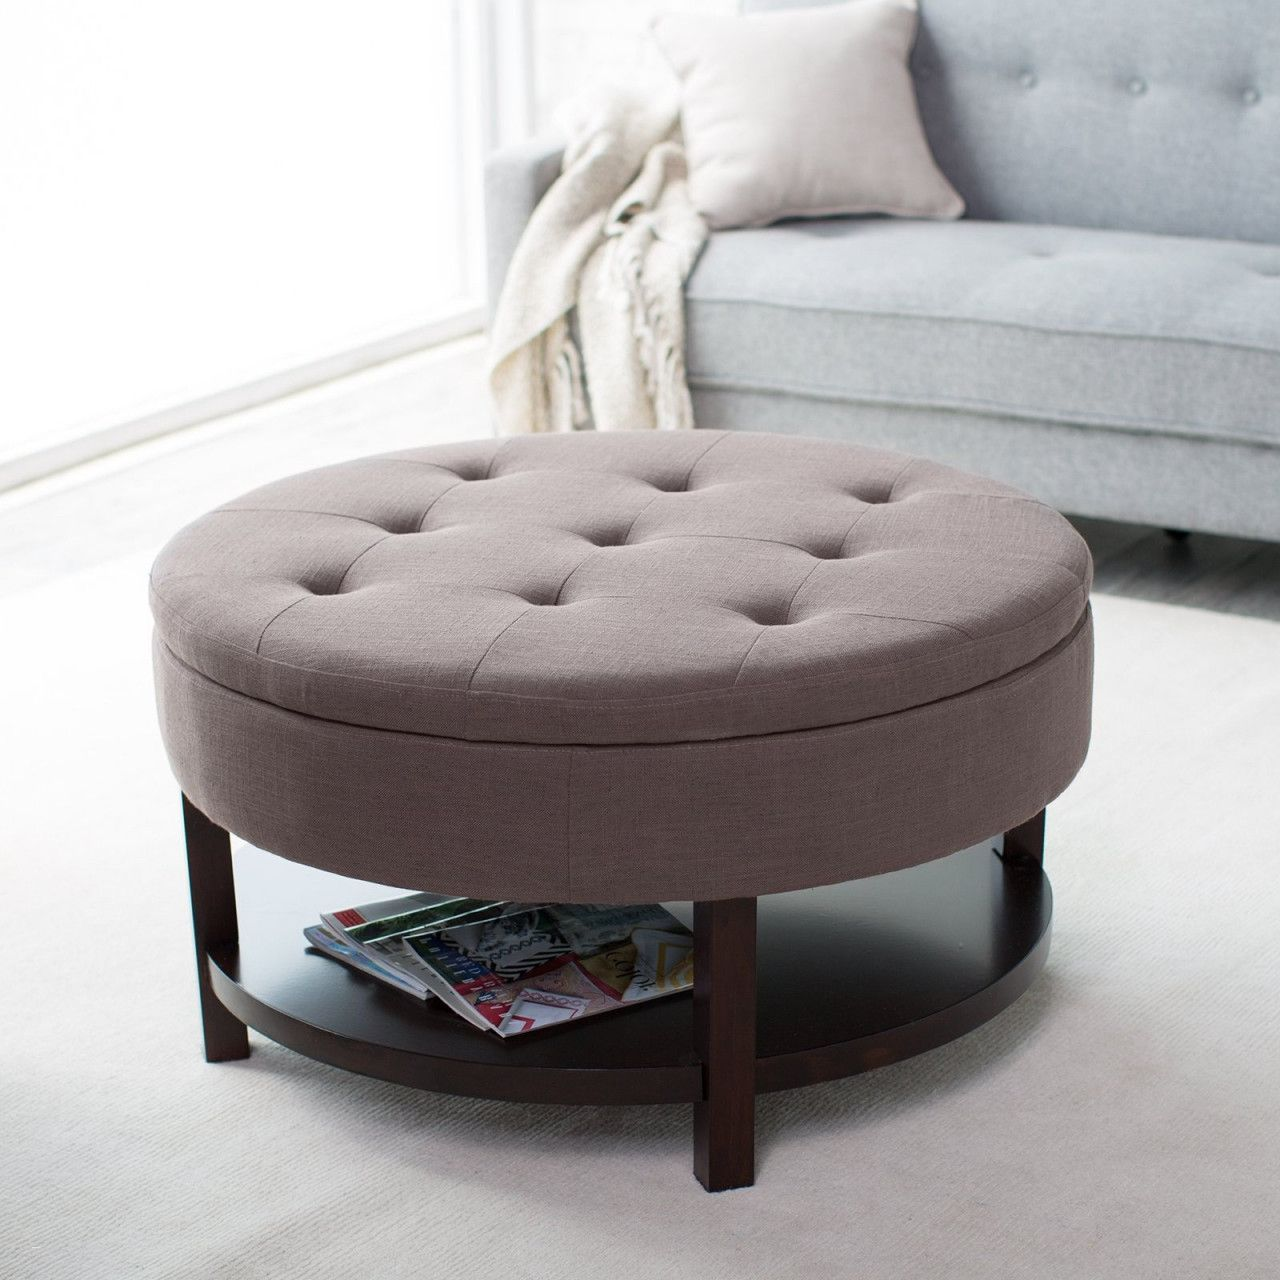 Magnificent 70 Lovely Round Ottoman Coffee Table Upholstered 2020 Desk Andrewgaddart Wooden Chair Designs For Living Room Andrewgaddartcom